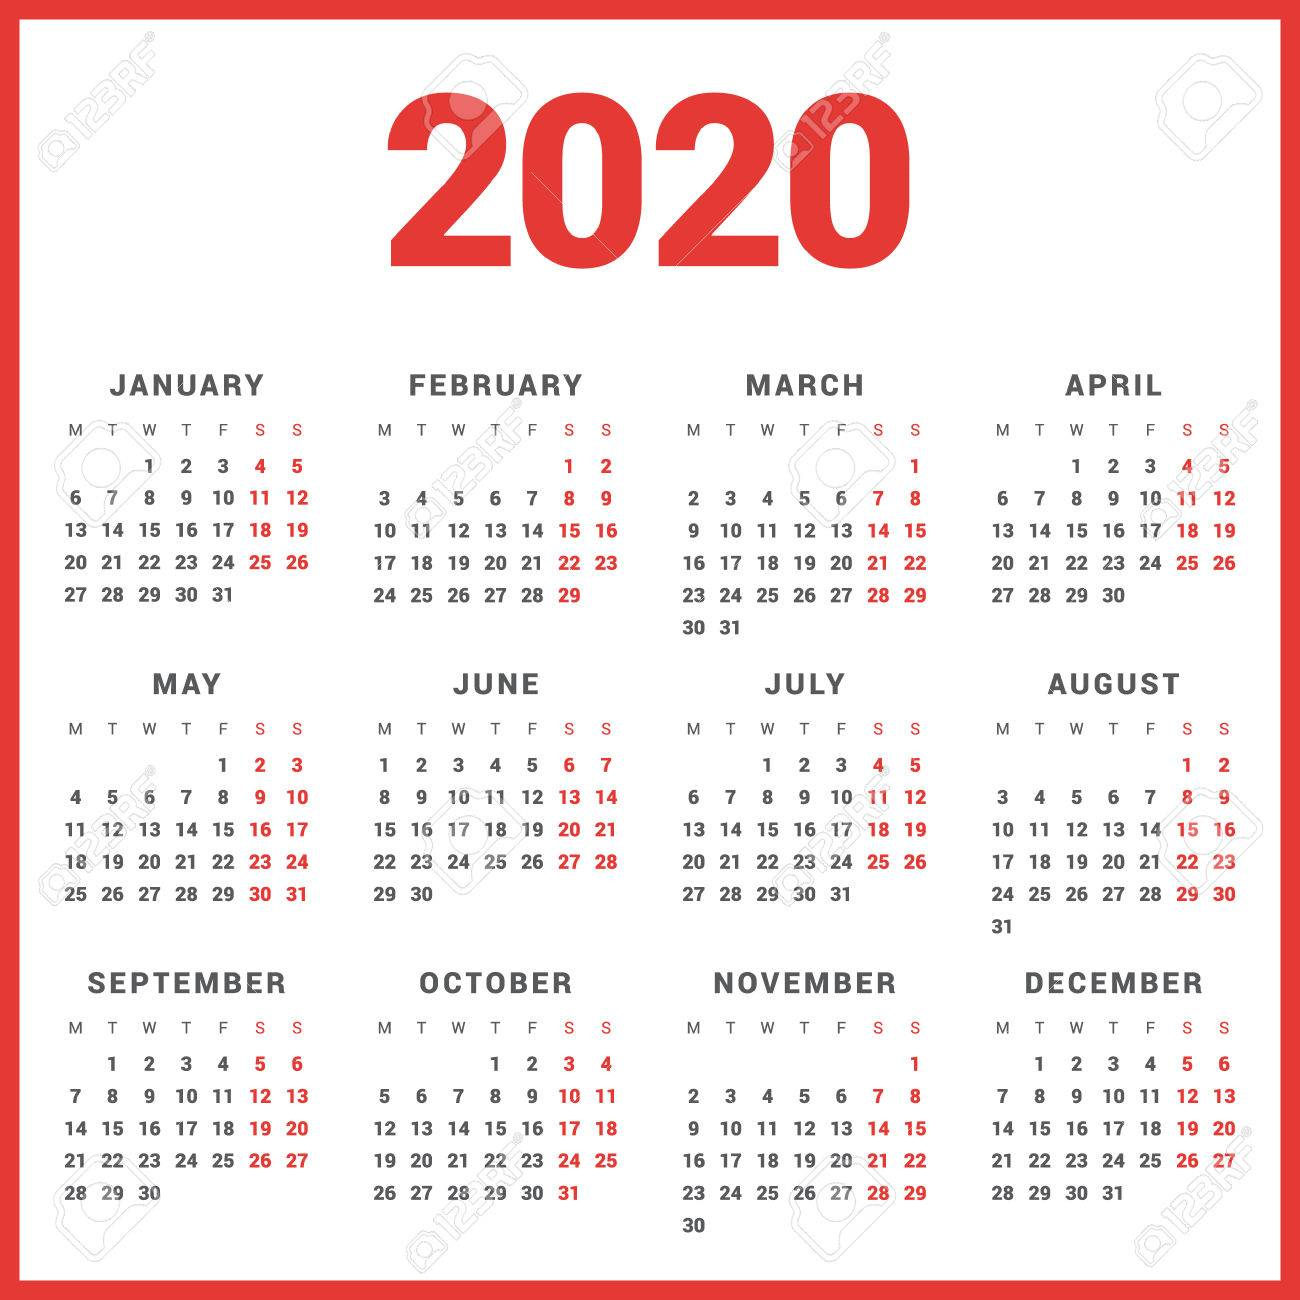 Week By Week Calendar 2020 Calendar For 2020 Year On White Background. Week Starts Monday